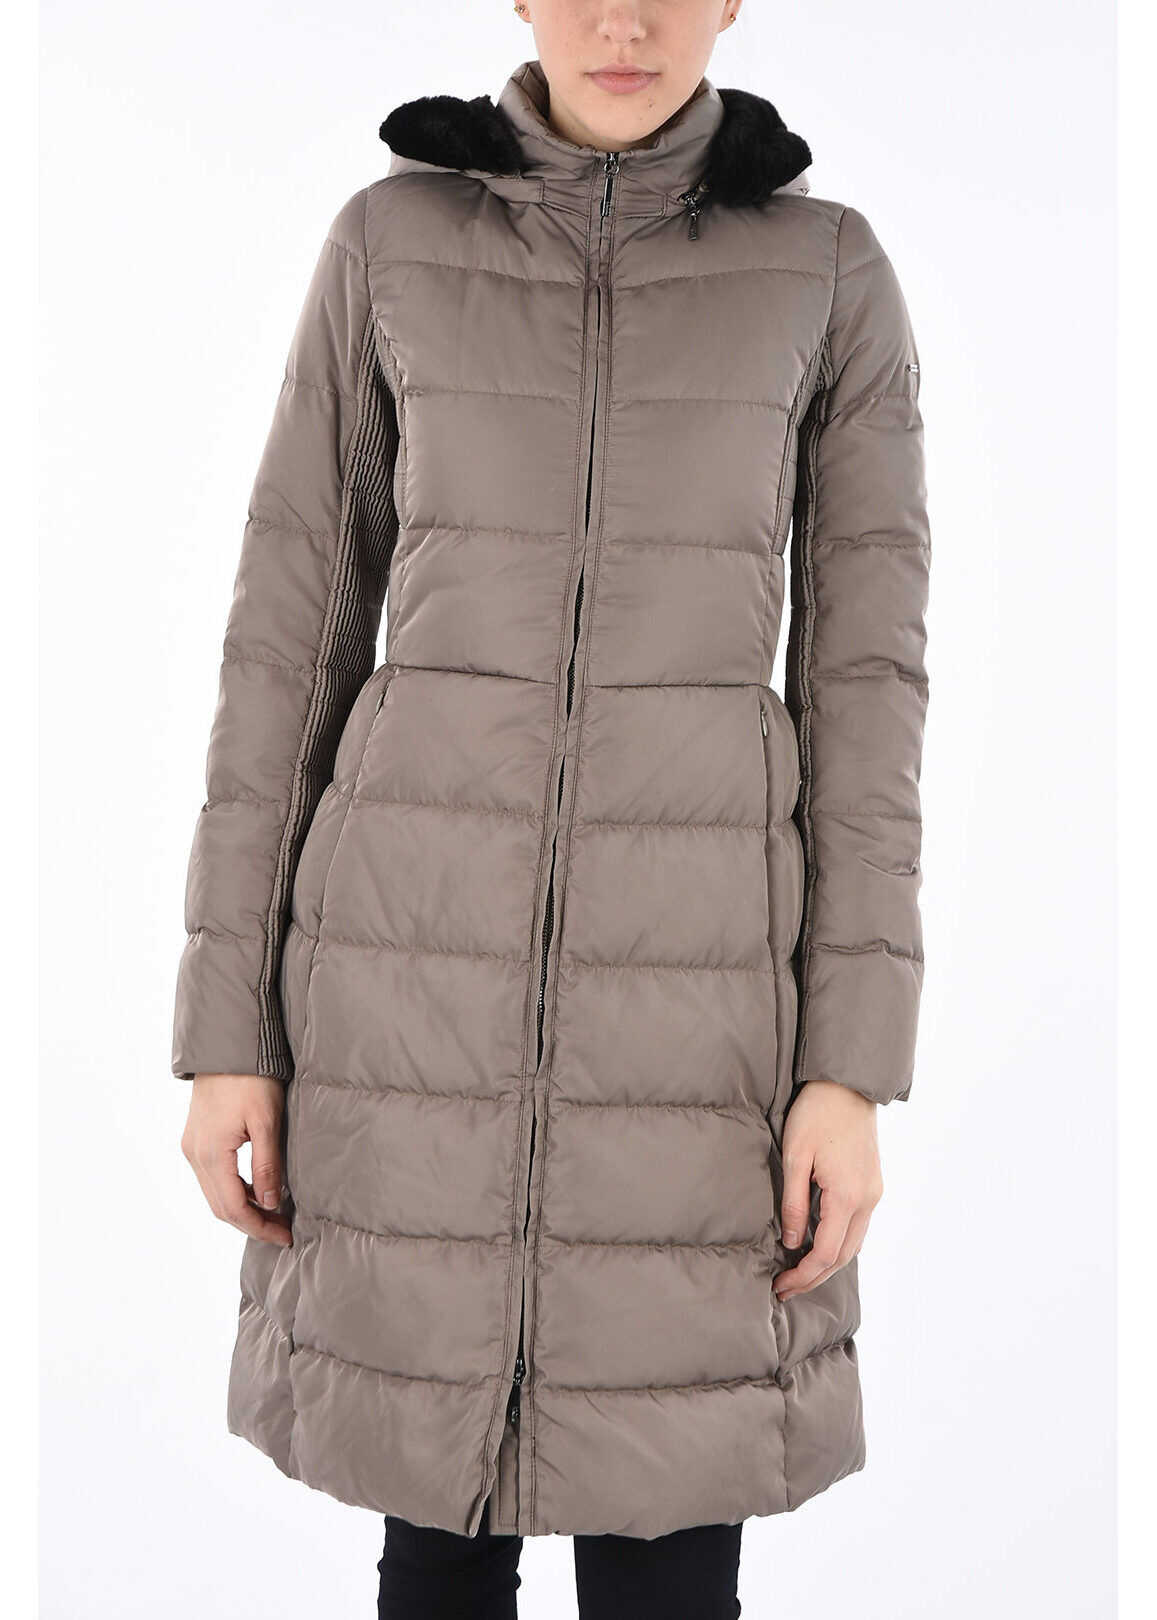 Armani ARMANI JEANS Hooded Long Down Padded Jacket BROWN